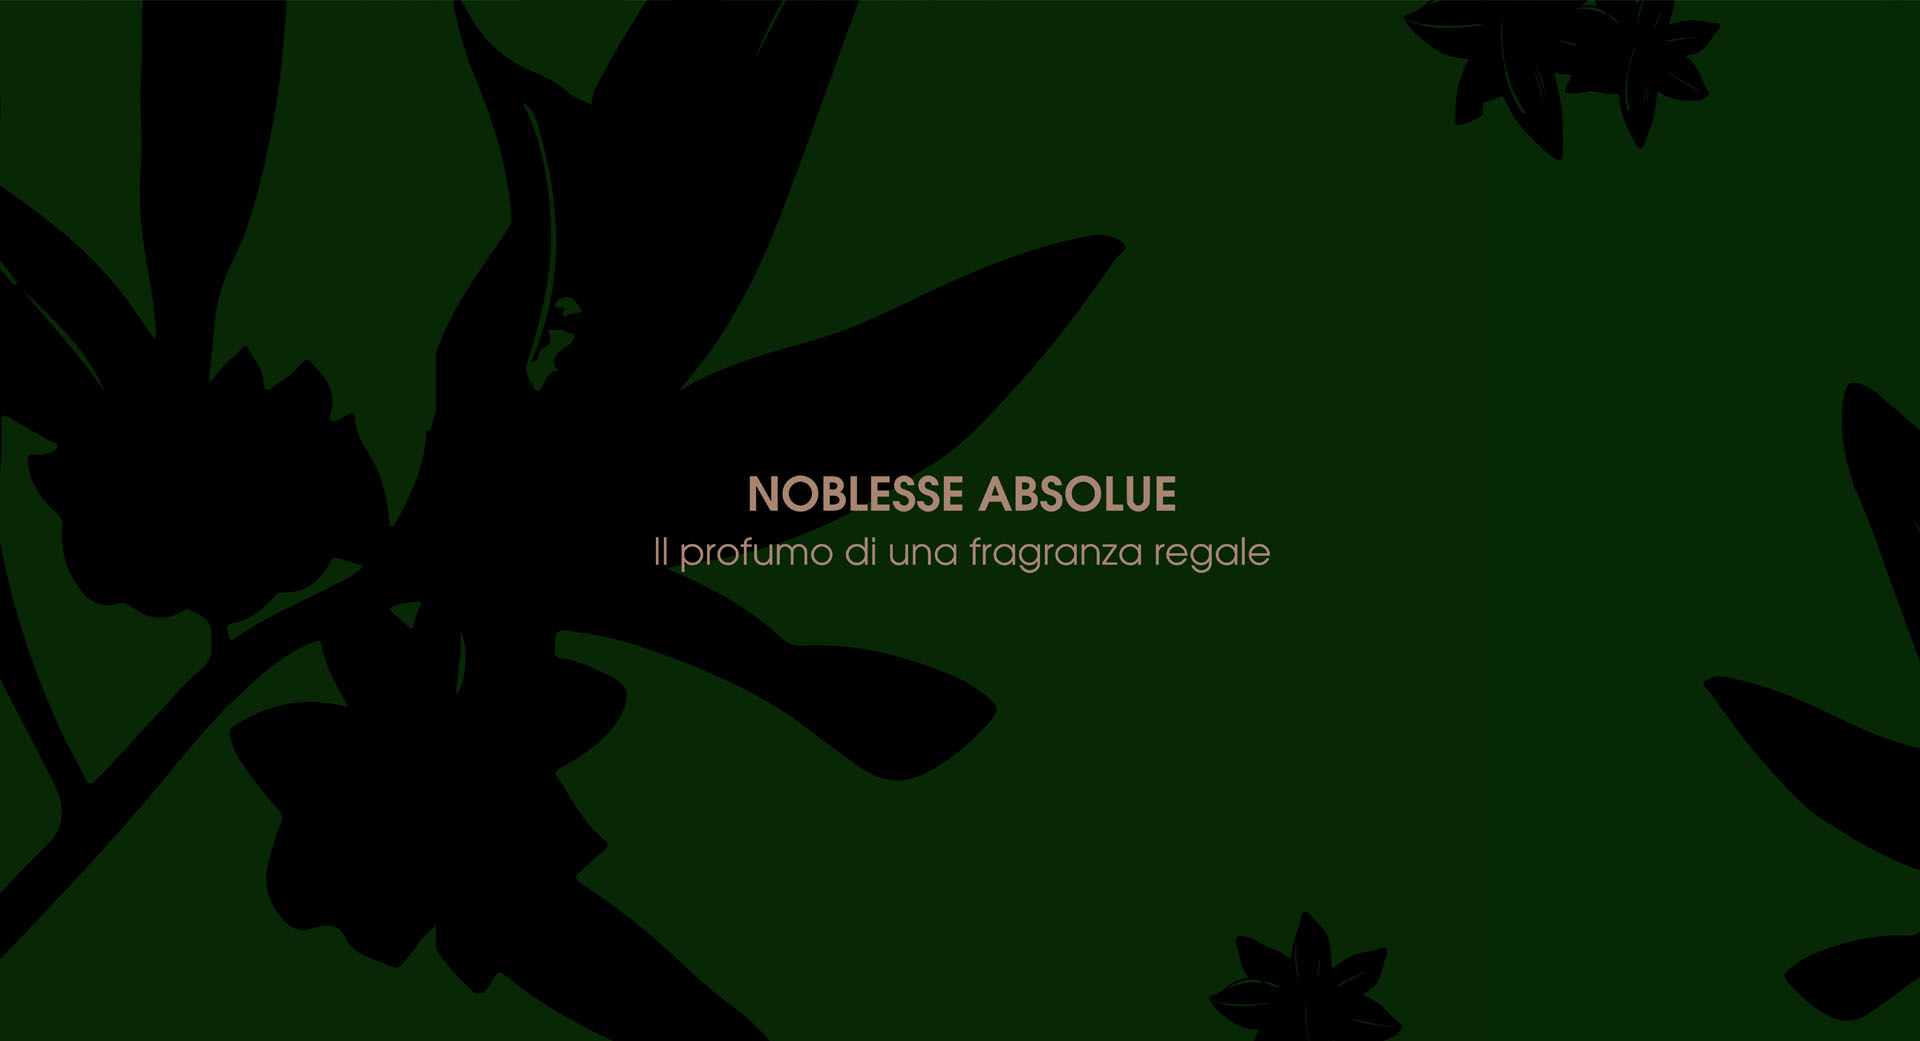 noblesse absolue